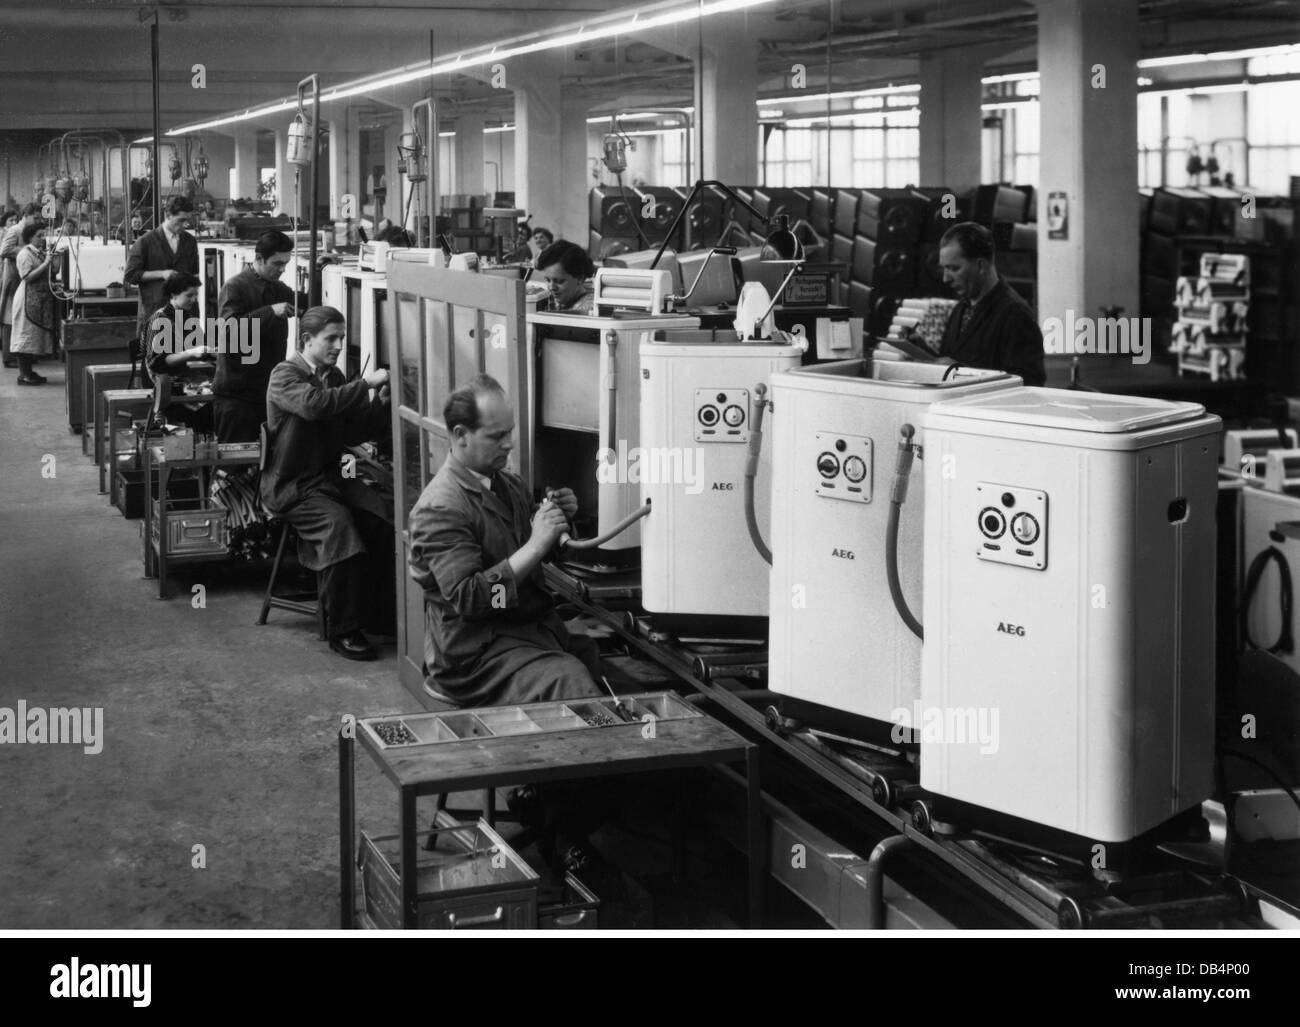 Aeg Black And White Stock Photos Images Alamy Washing Machine Wiring Diagram Industry Household Appliances Manufacturing Of Machines Nuremberg 1950s